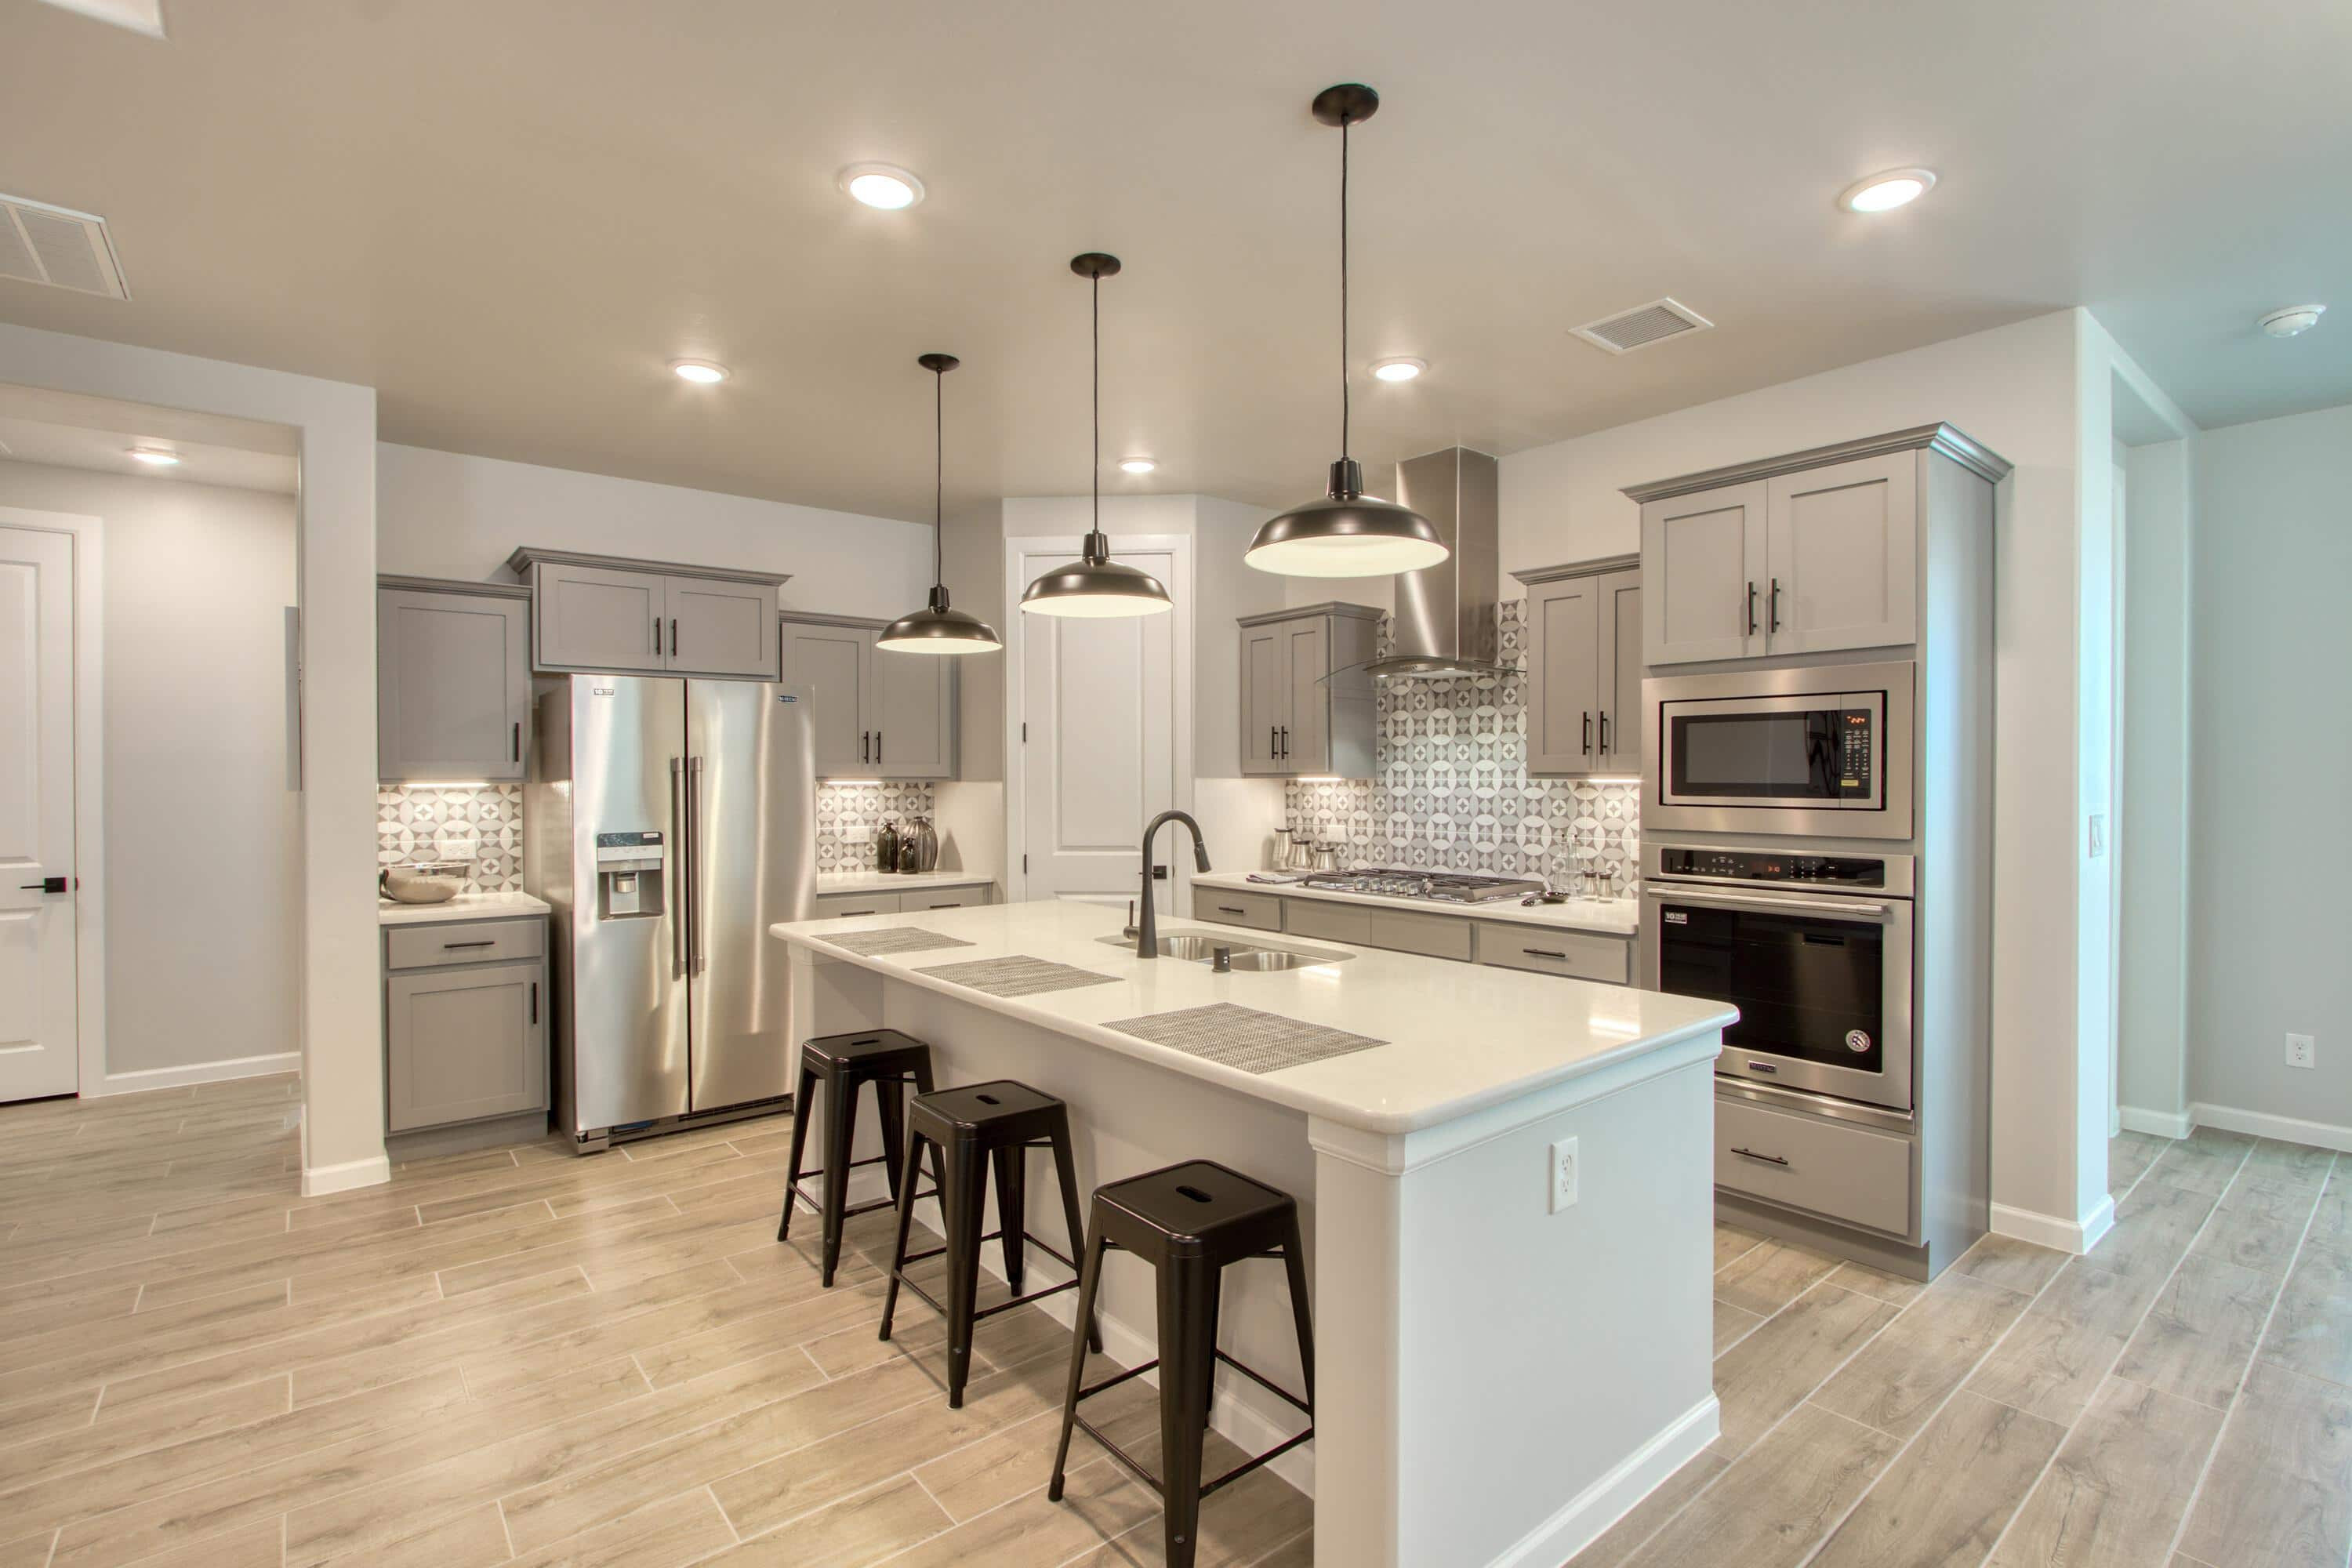 Kitchen is new model home